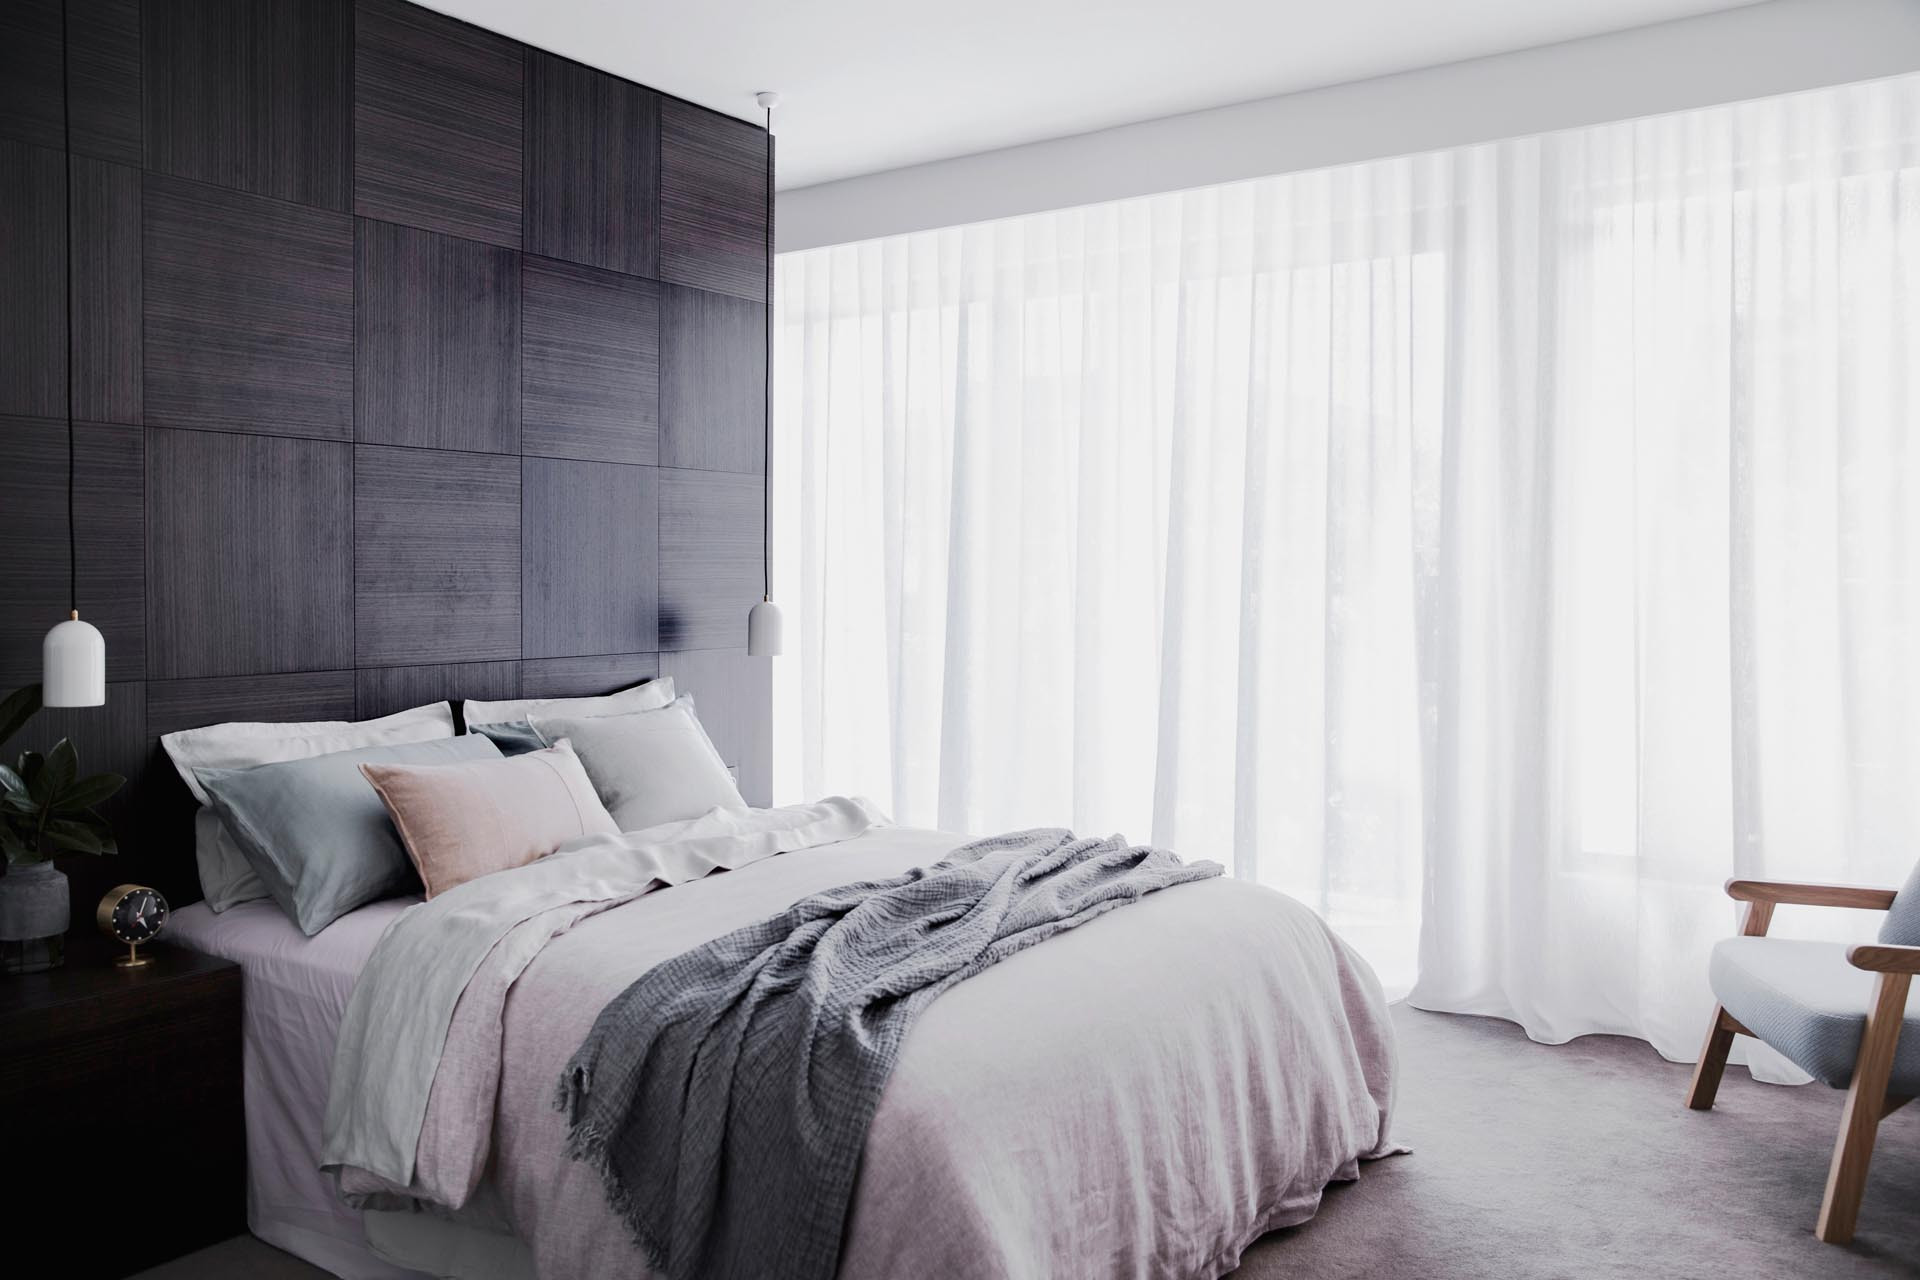 A master bedroom with a dark wood accent wall.